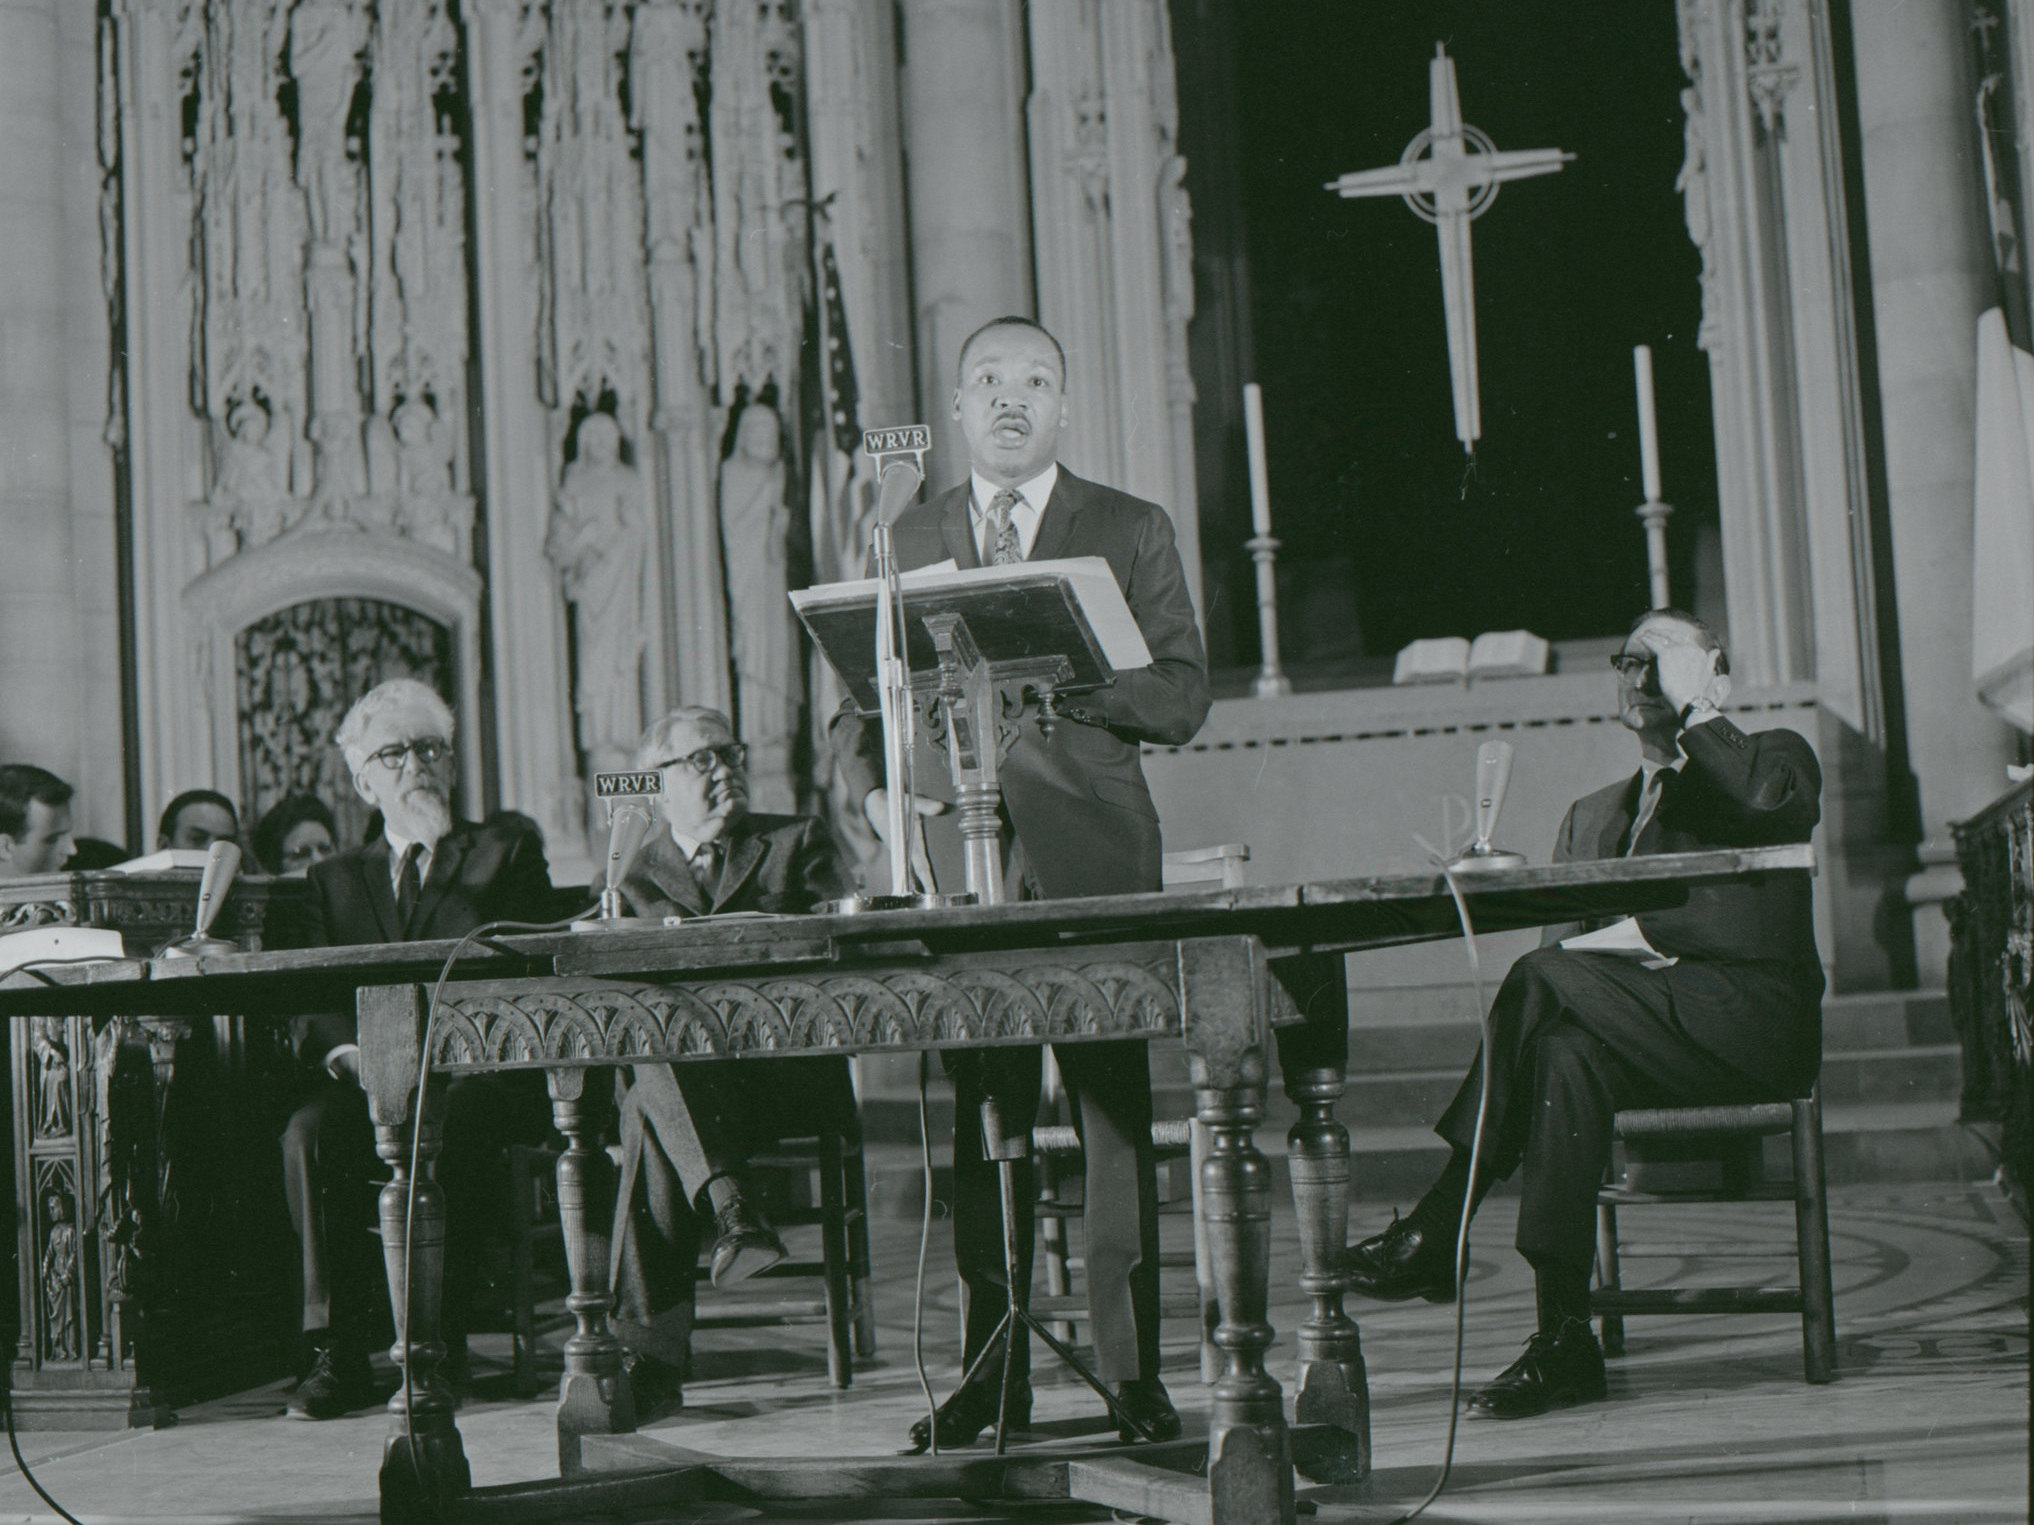 """We must speak with all the humility that is appropriate to our limited vision, but we must speak,"" the Rev. Dr. Martin Luther King Jr. declared at Riverside Church in Manhattan in 1967. (Credit: John C. Goodwin)"